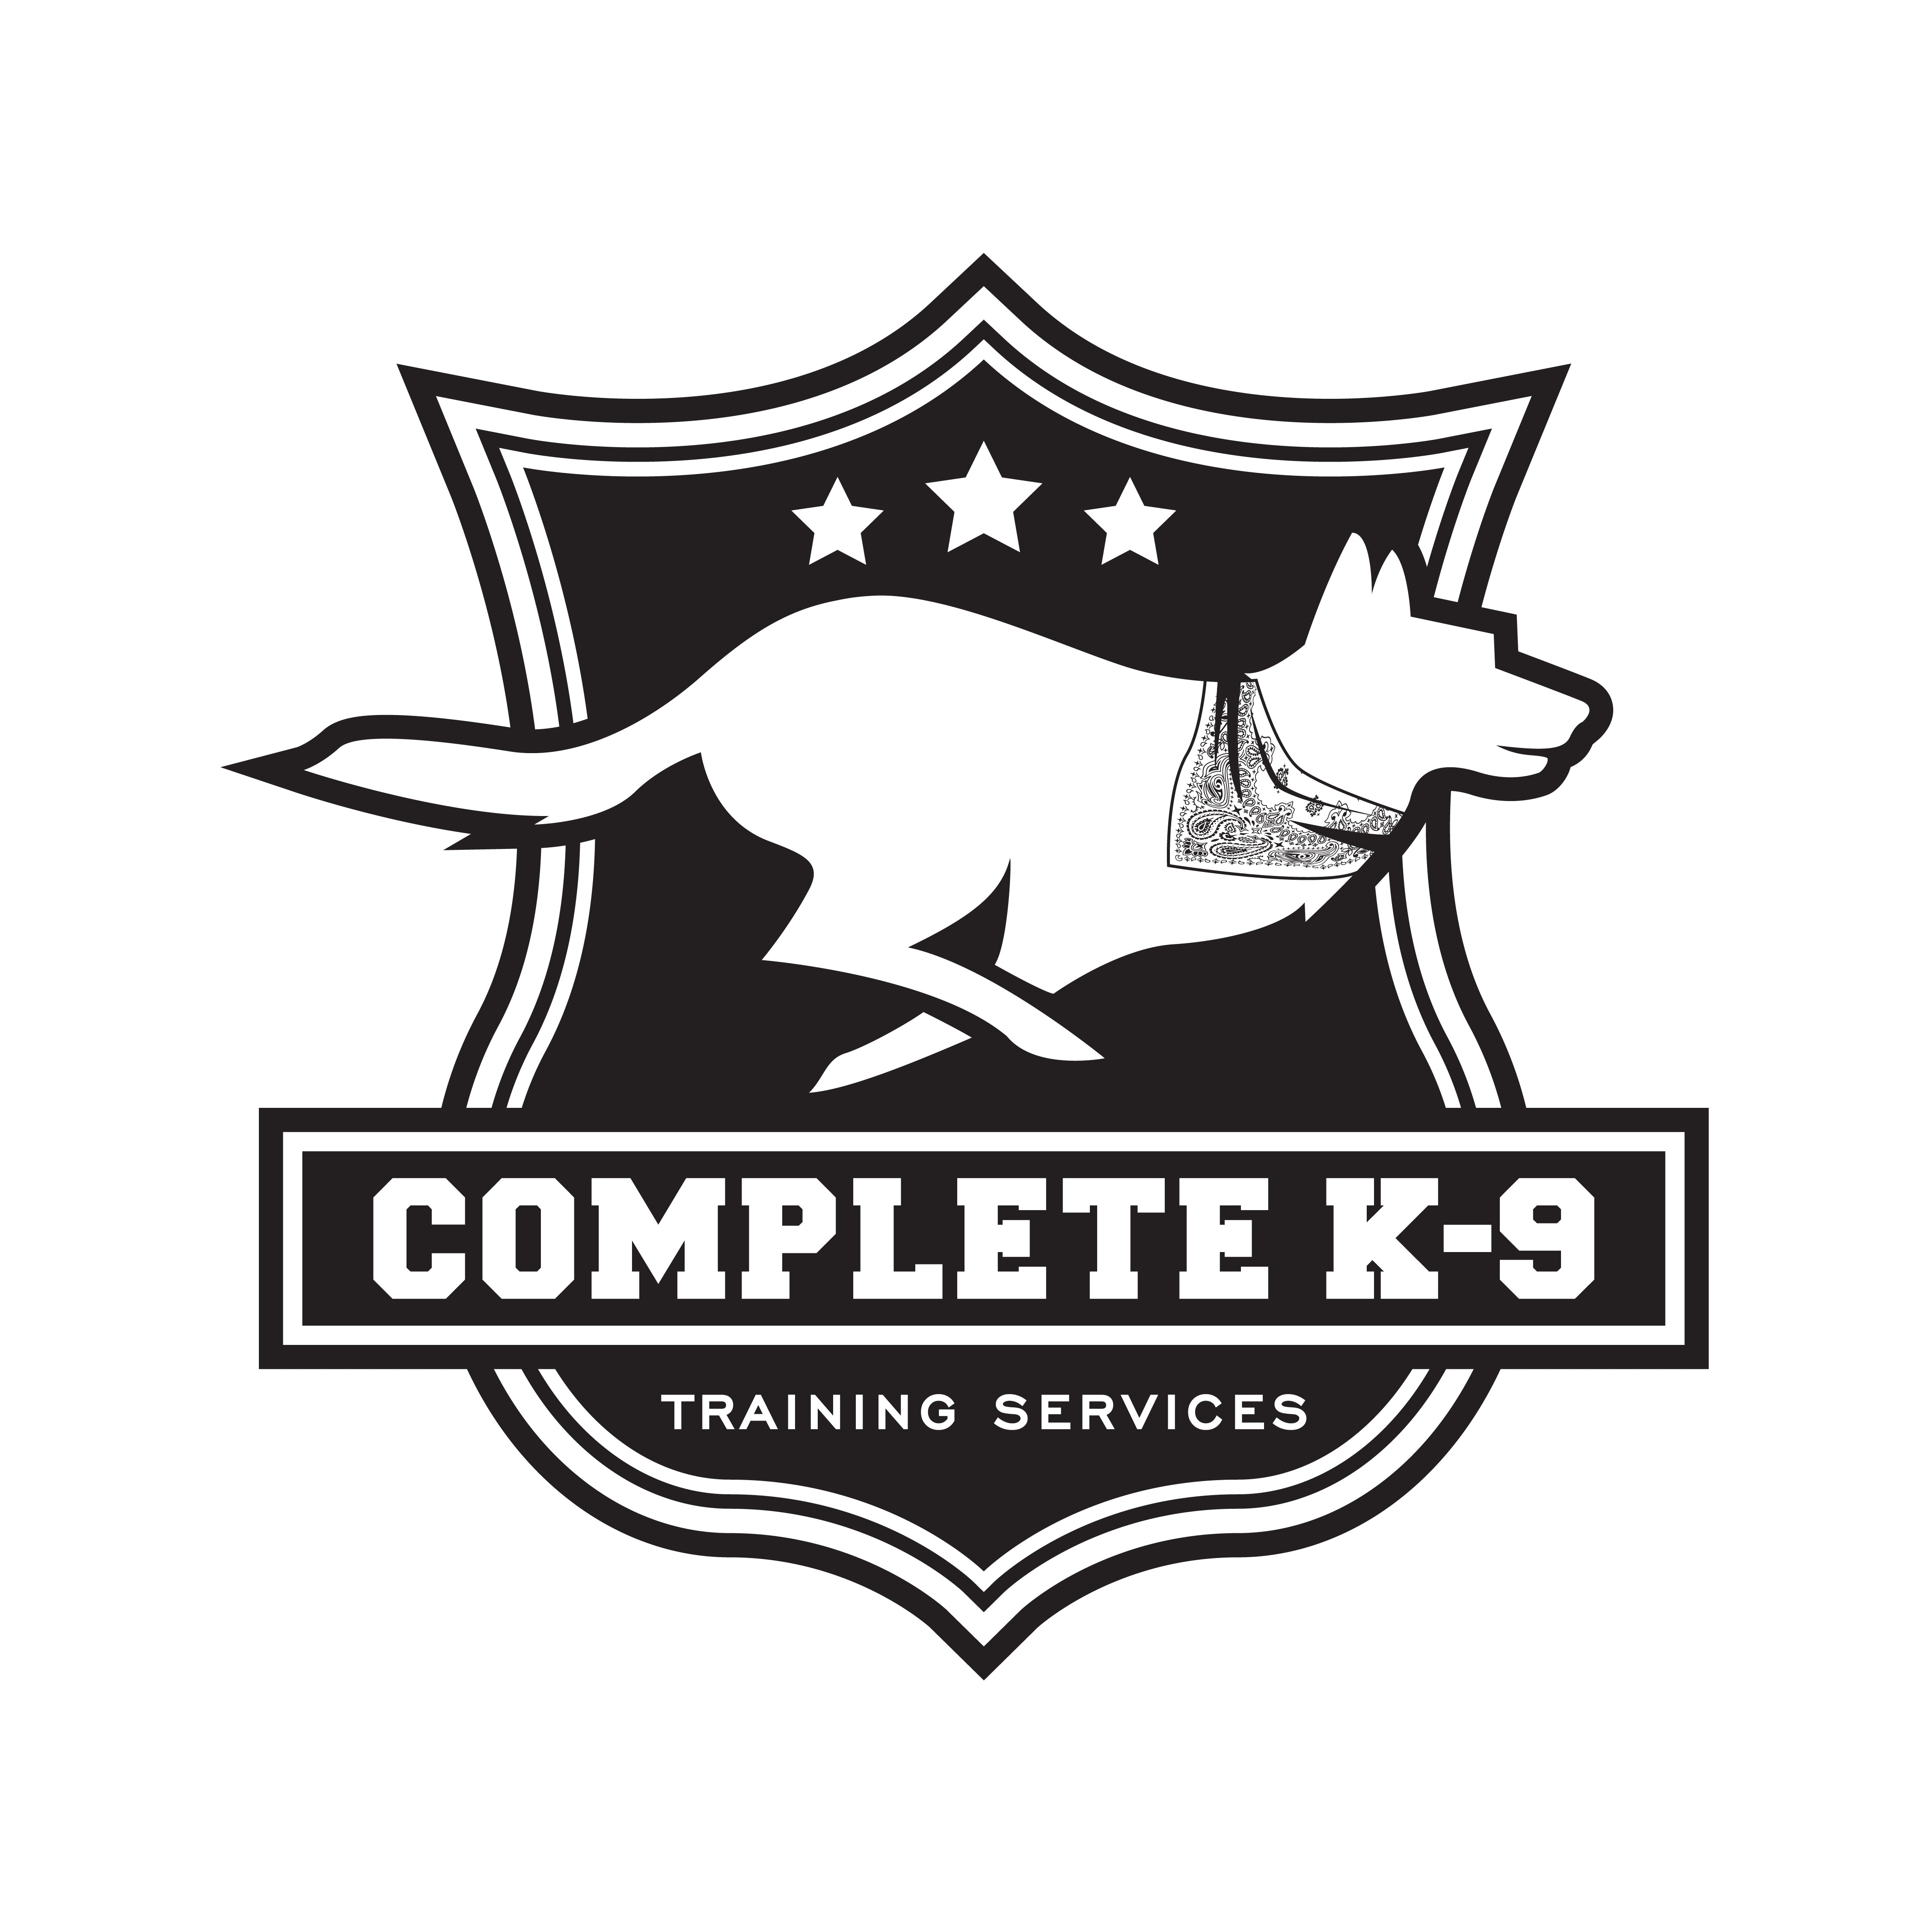 Complete K-9 Training Services needs a design to appeal to officers, and regular dog owners, alike.